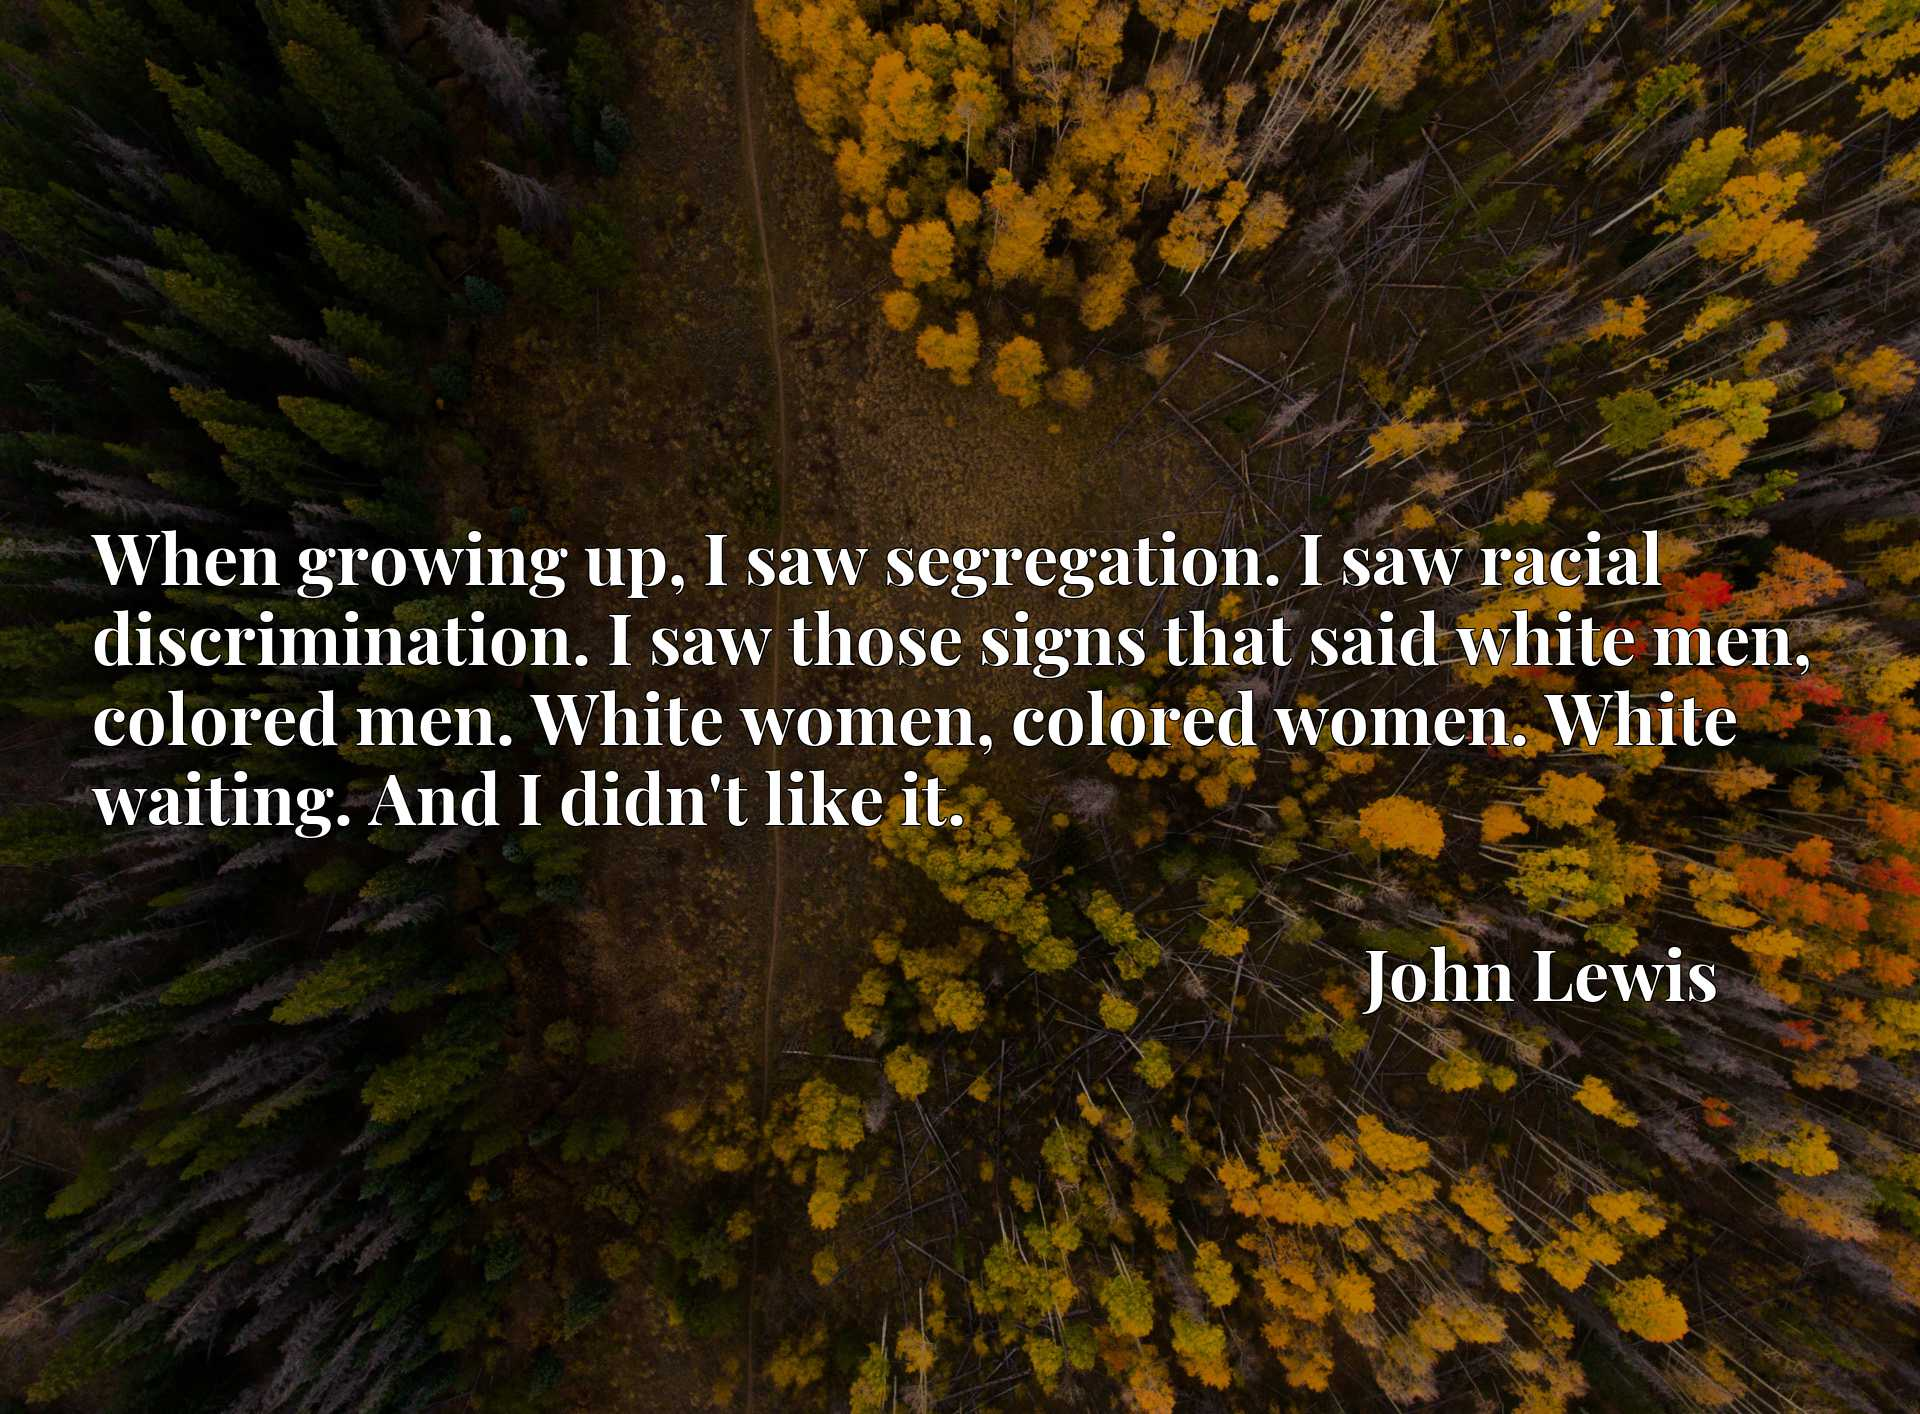 When growing up, I saw segregation. I saw racial discrimination. I saw those signs that said white men, colored men. White women, colored women. White waiting. And I didn't like it.